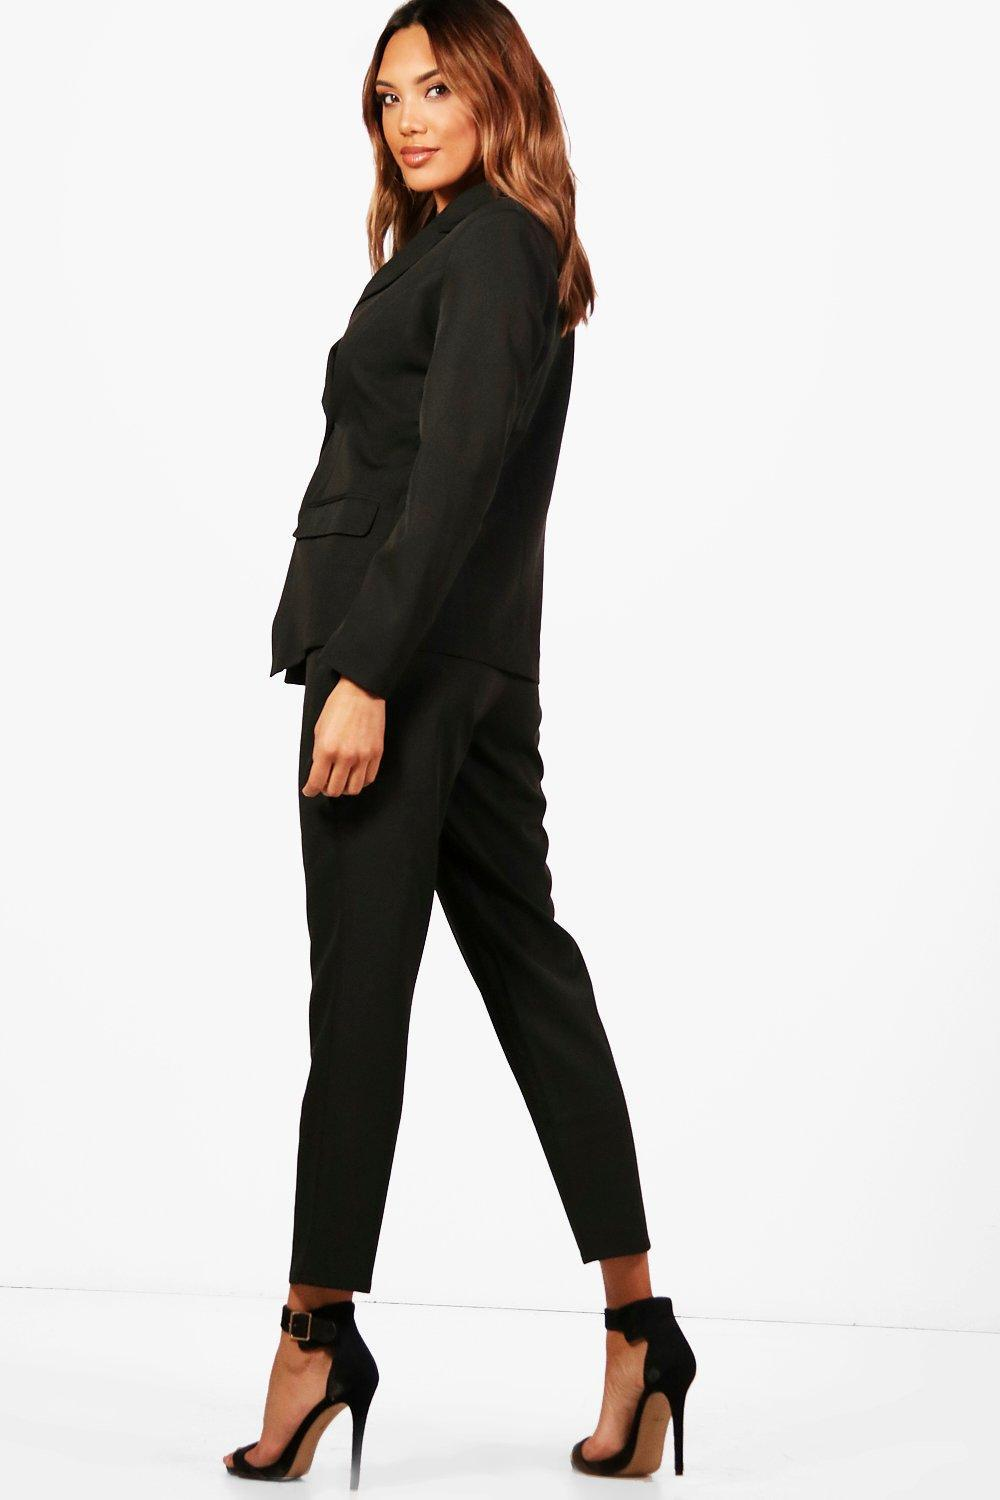 c50dabd726f6 Boohoo Straight Leg Woven Suit Trouser in Pink - Lyst